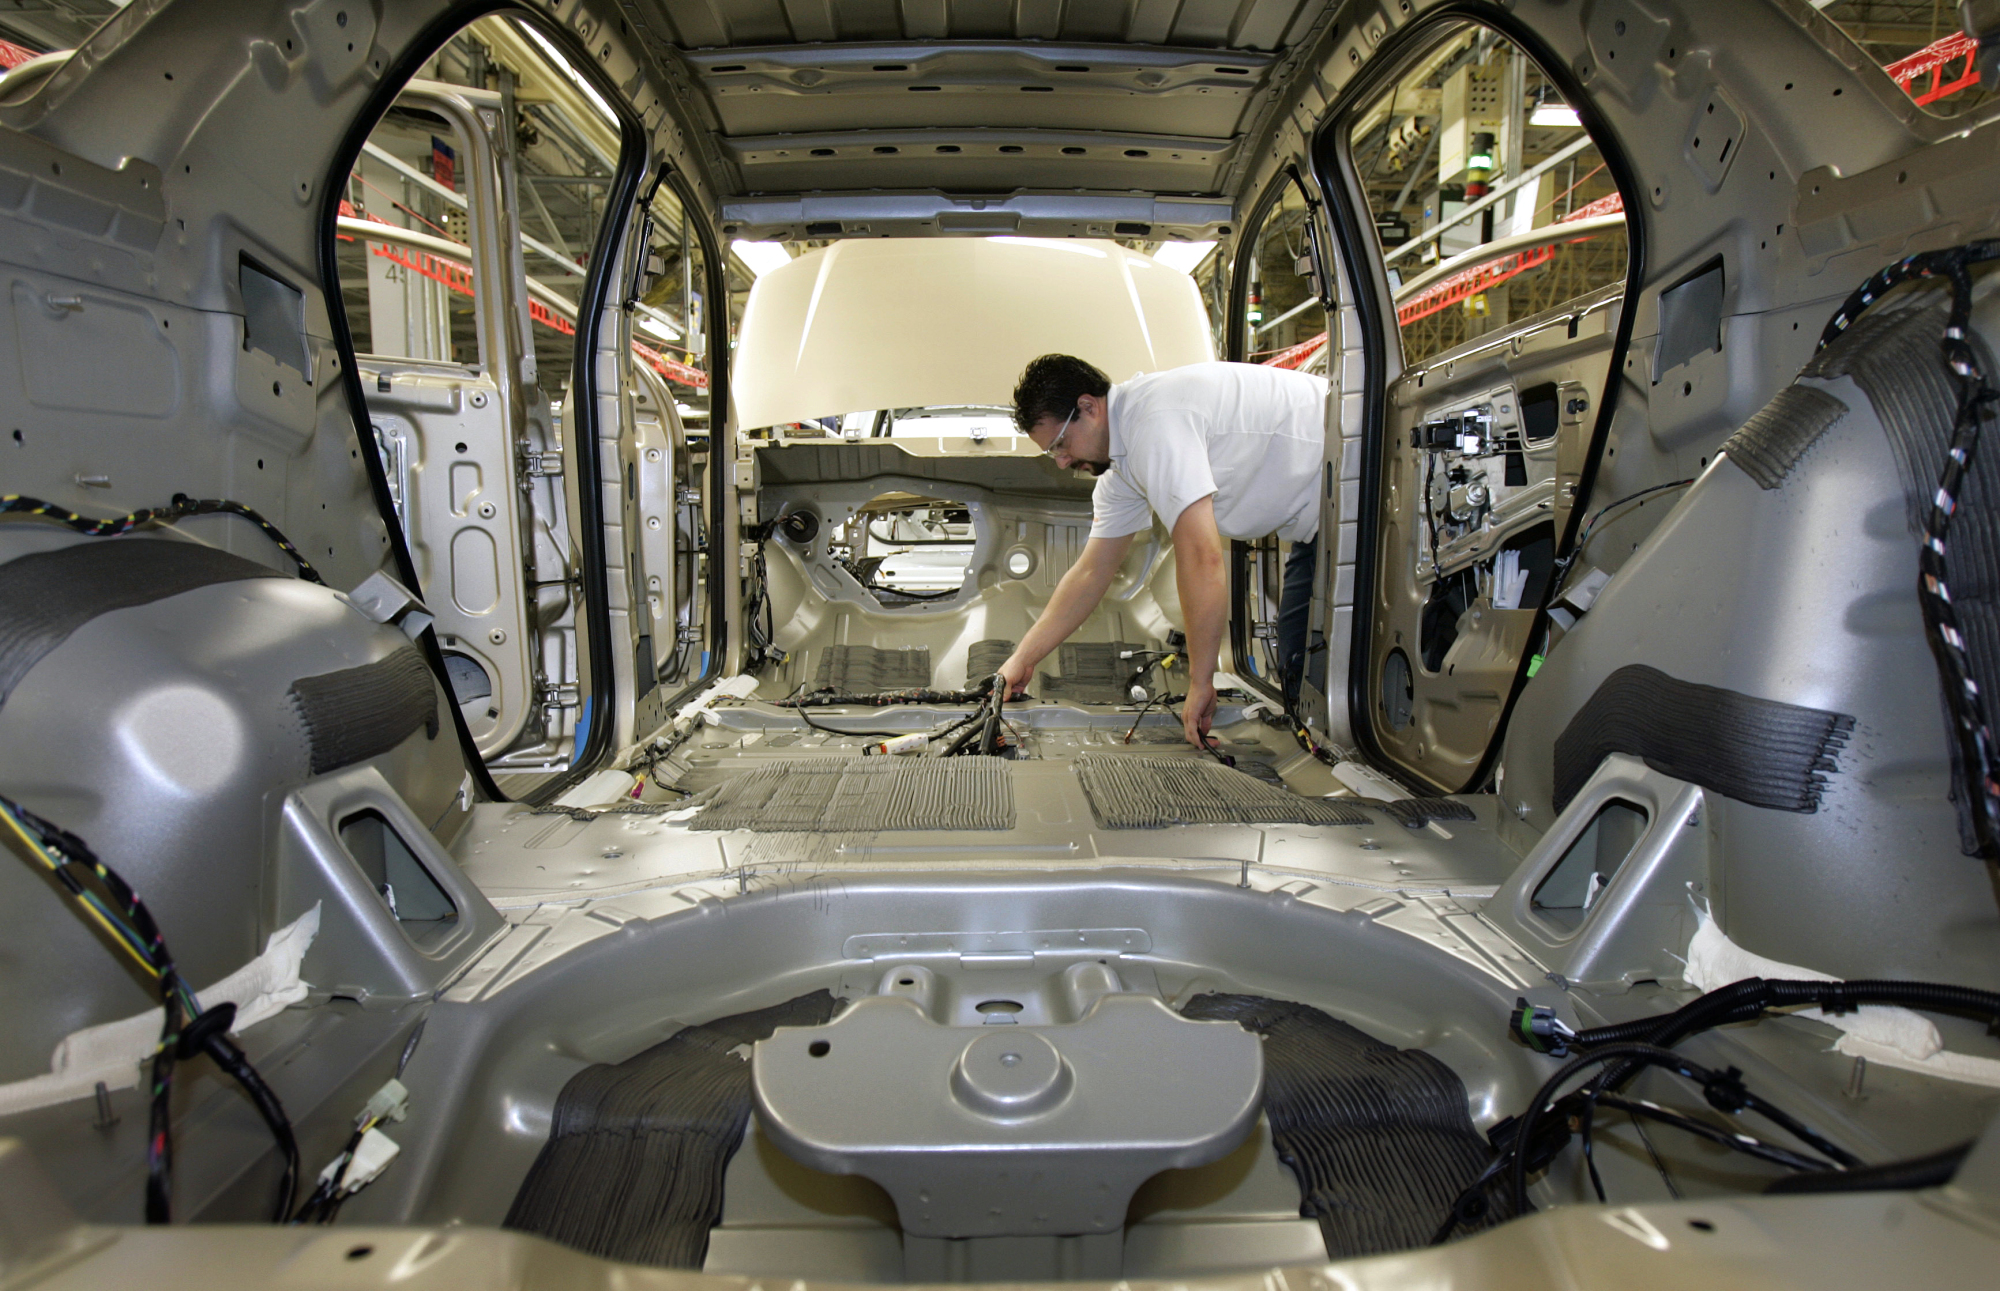 hight resolution of an auto worker puts a wiring harness into an empty vehicle body during production of general